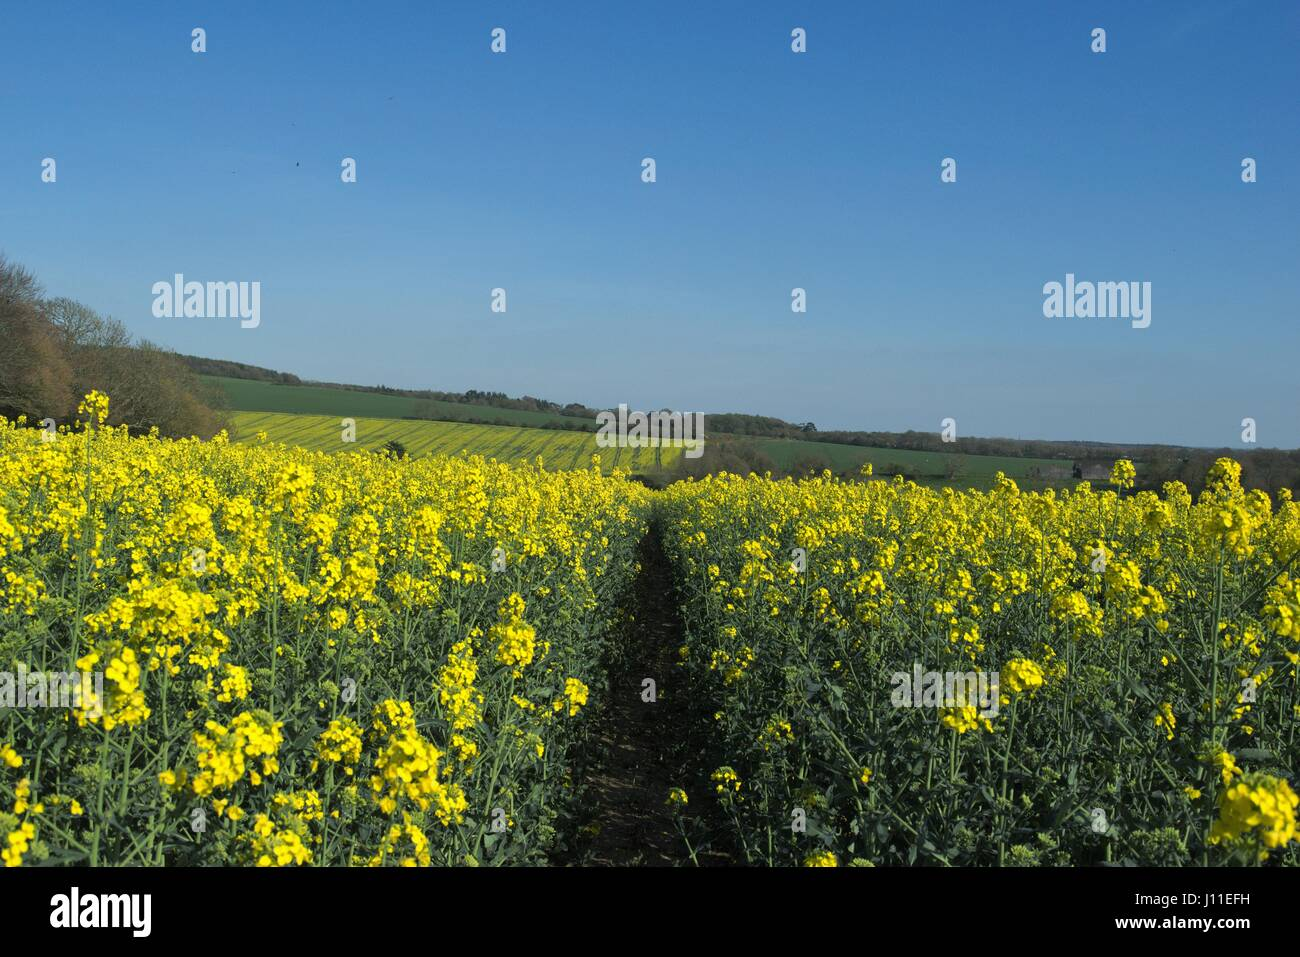 Field yellow flowers grown rapeseed stock photos field yellow rapeseed fields grown to be turned into vegetable oil look pretty but don mightylinksfo